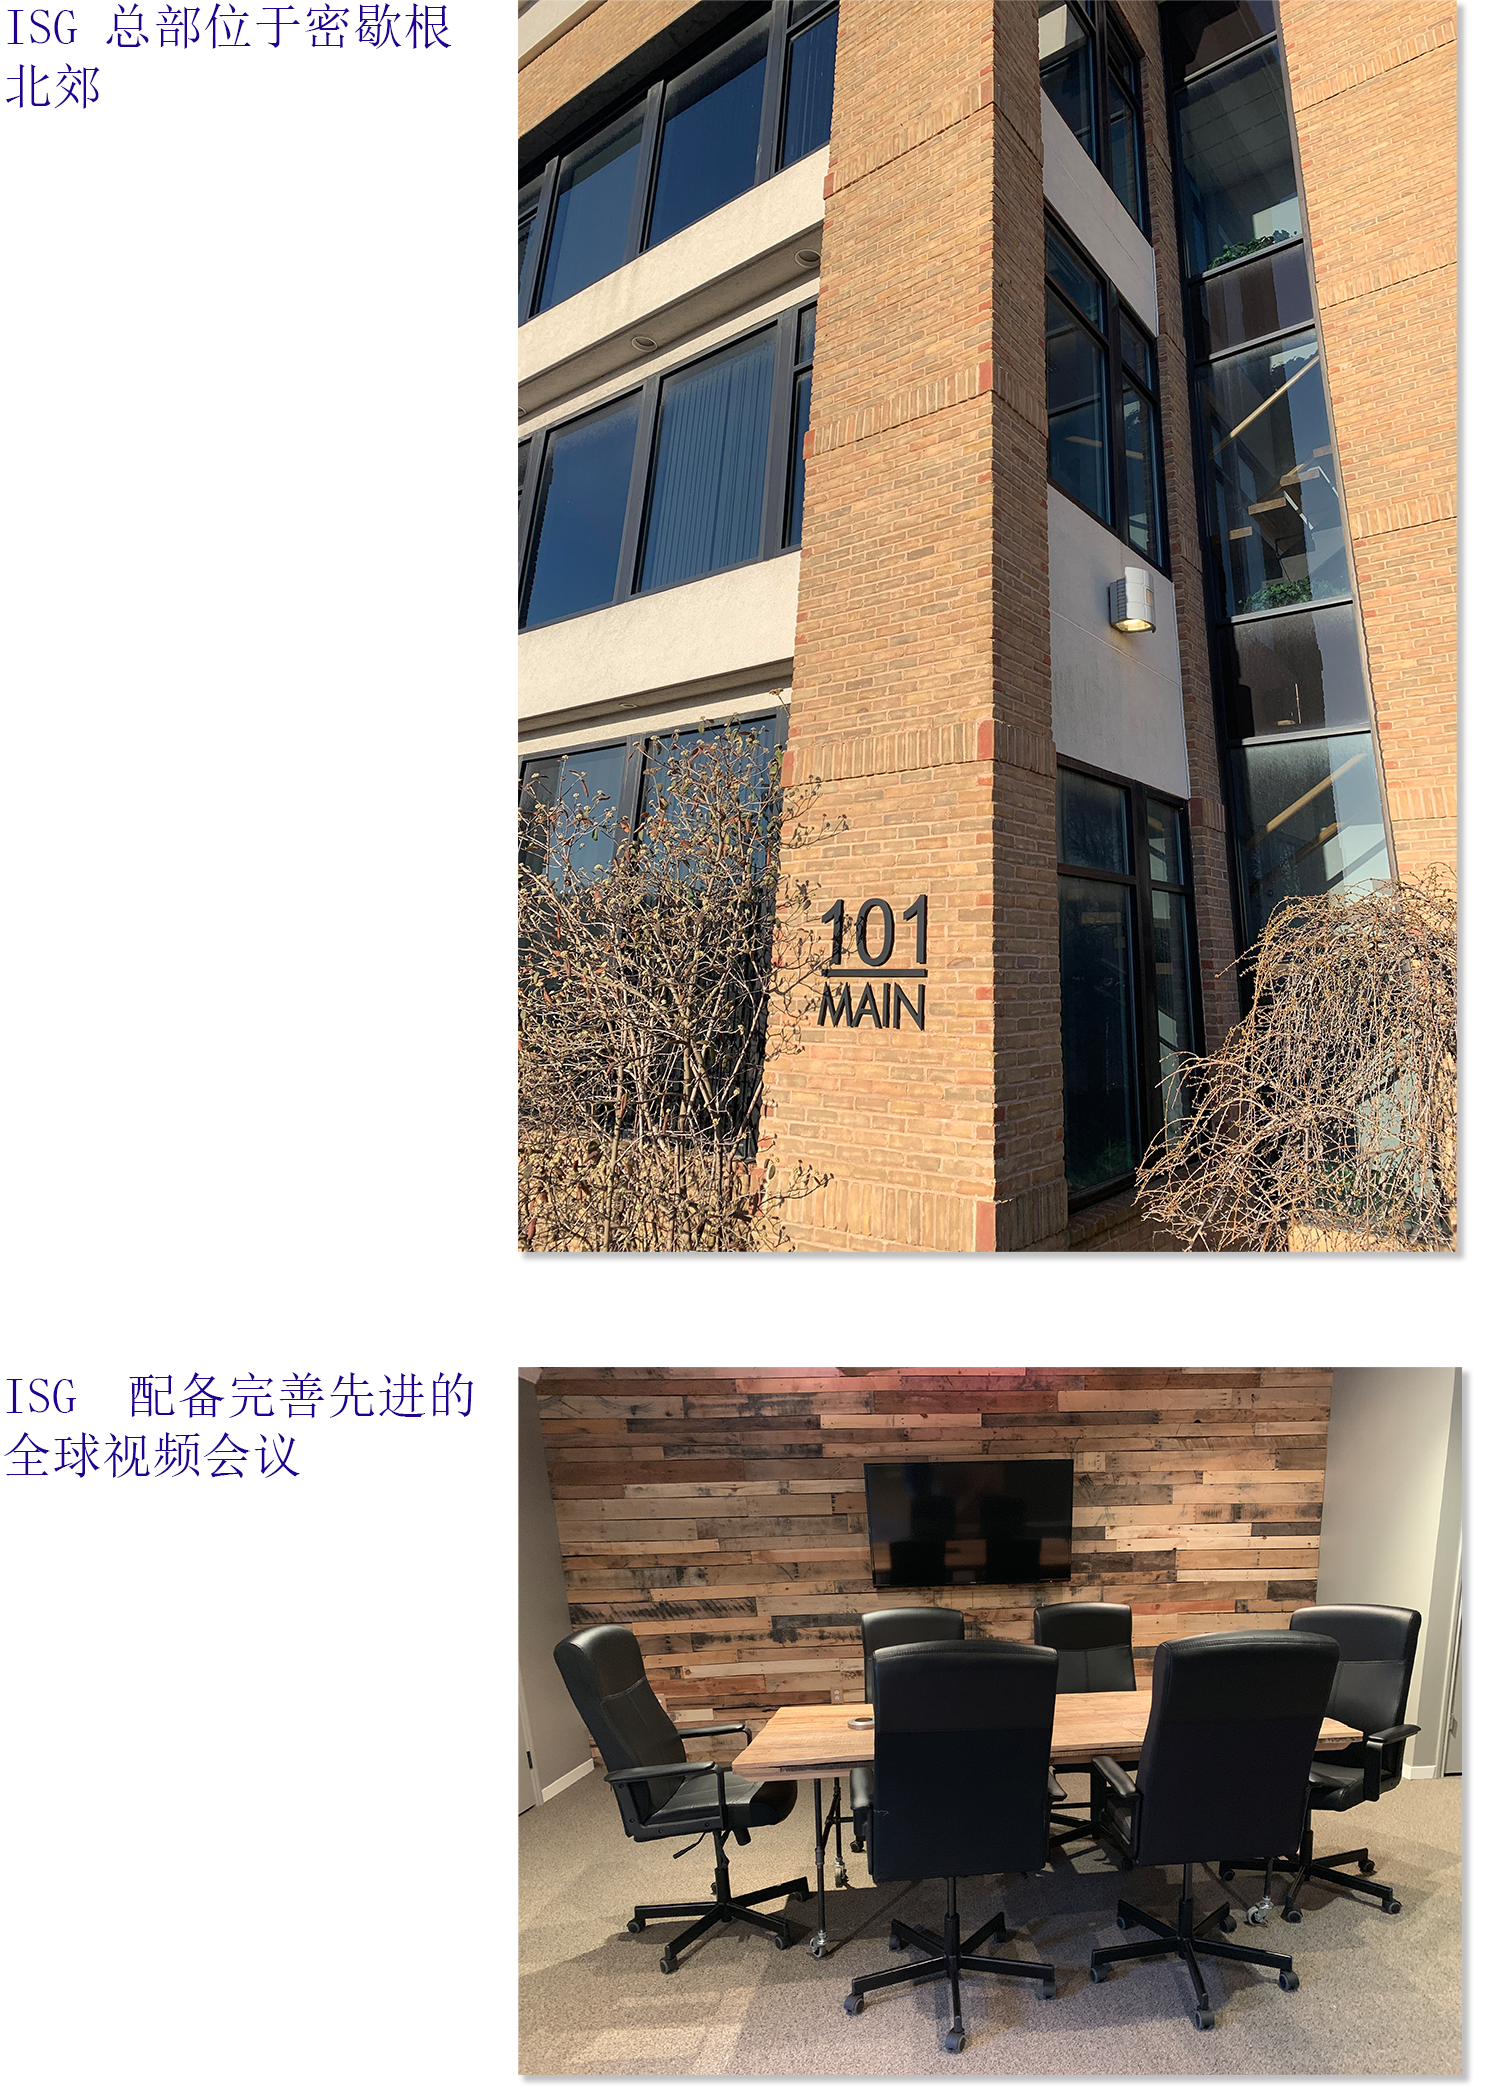 Office pictures - chinese.png